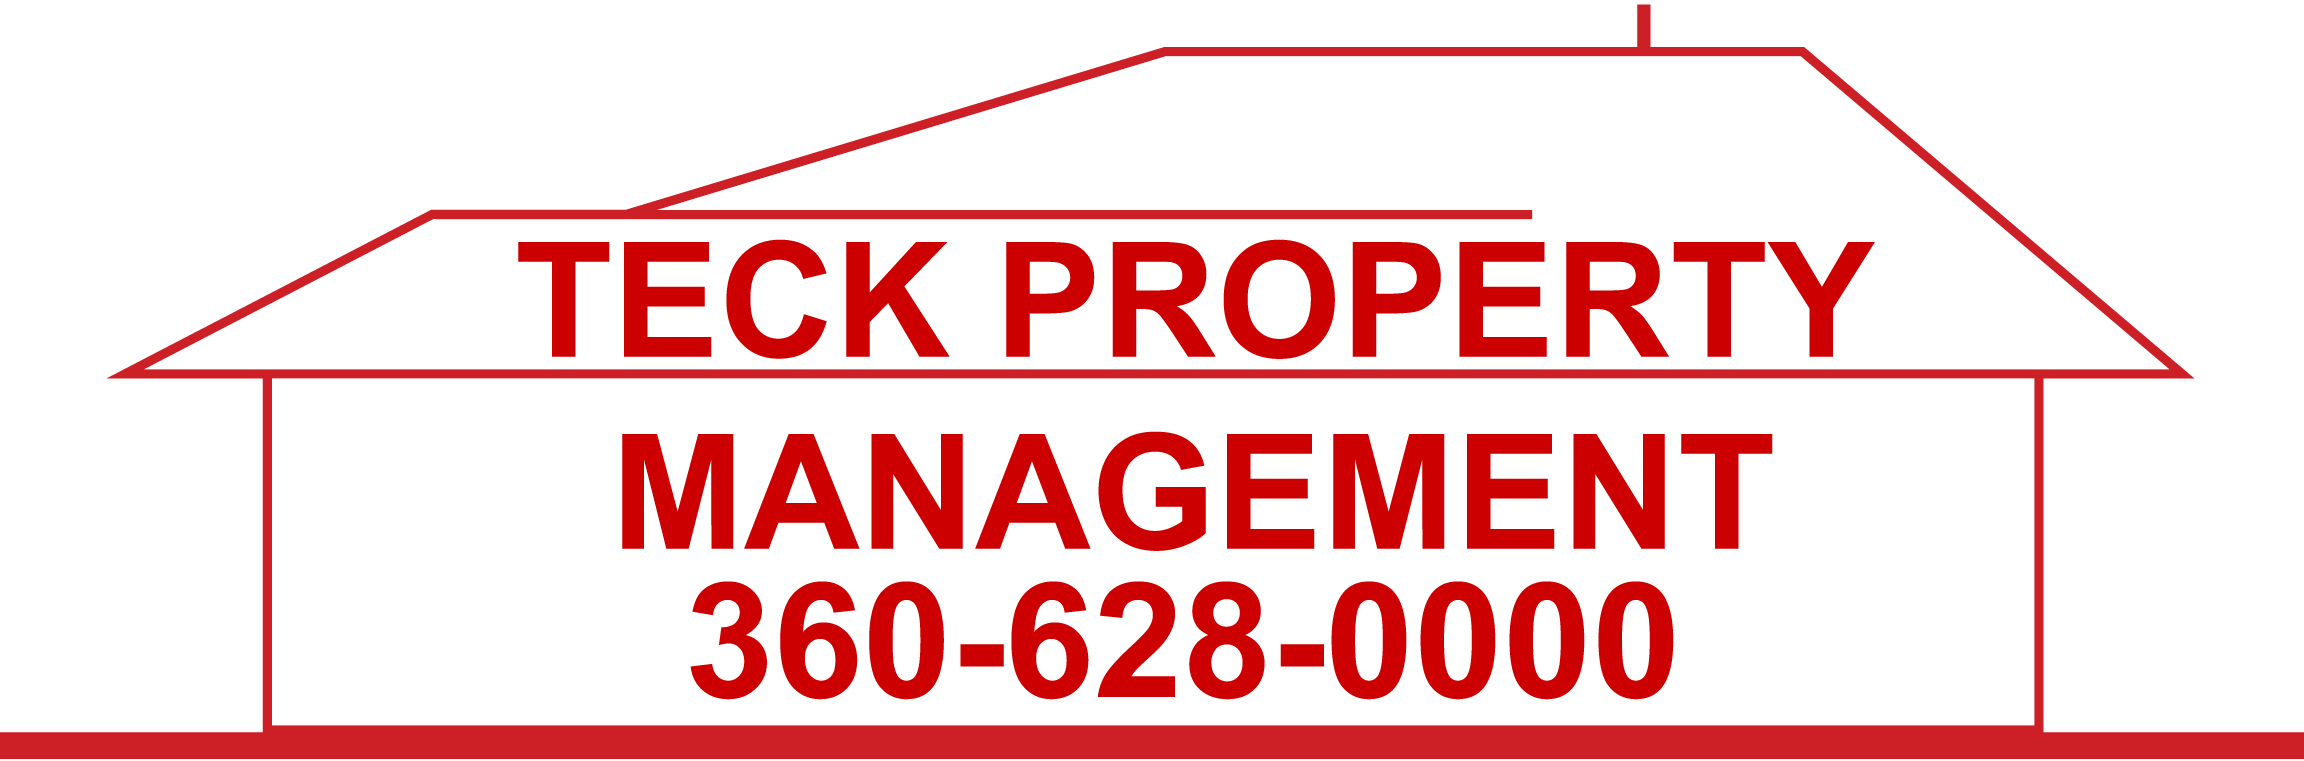 Teck Property Management